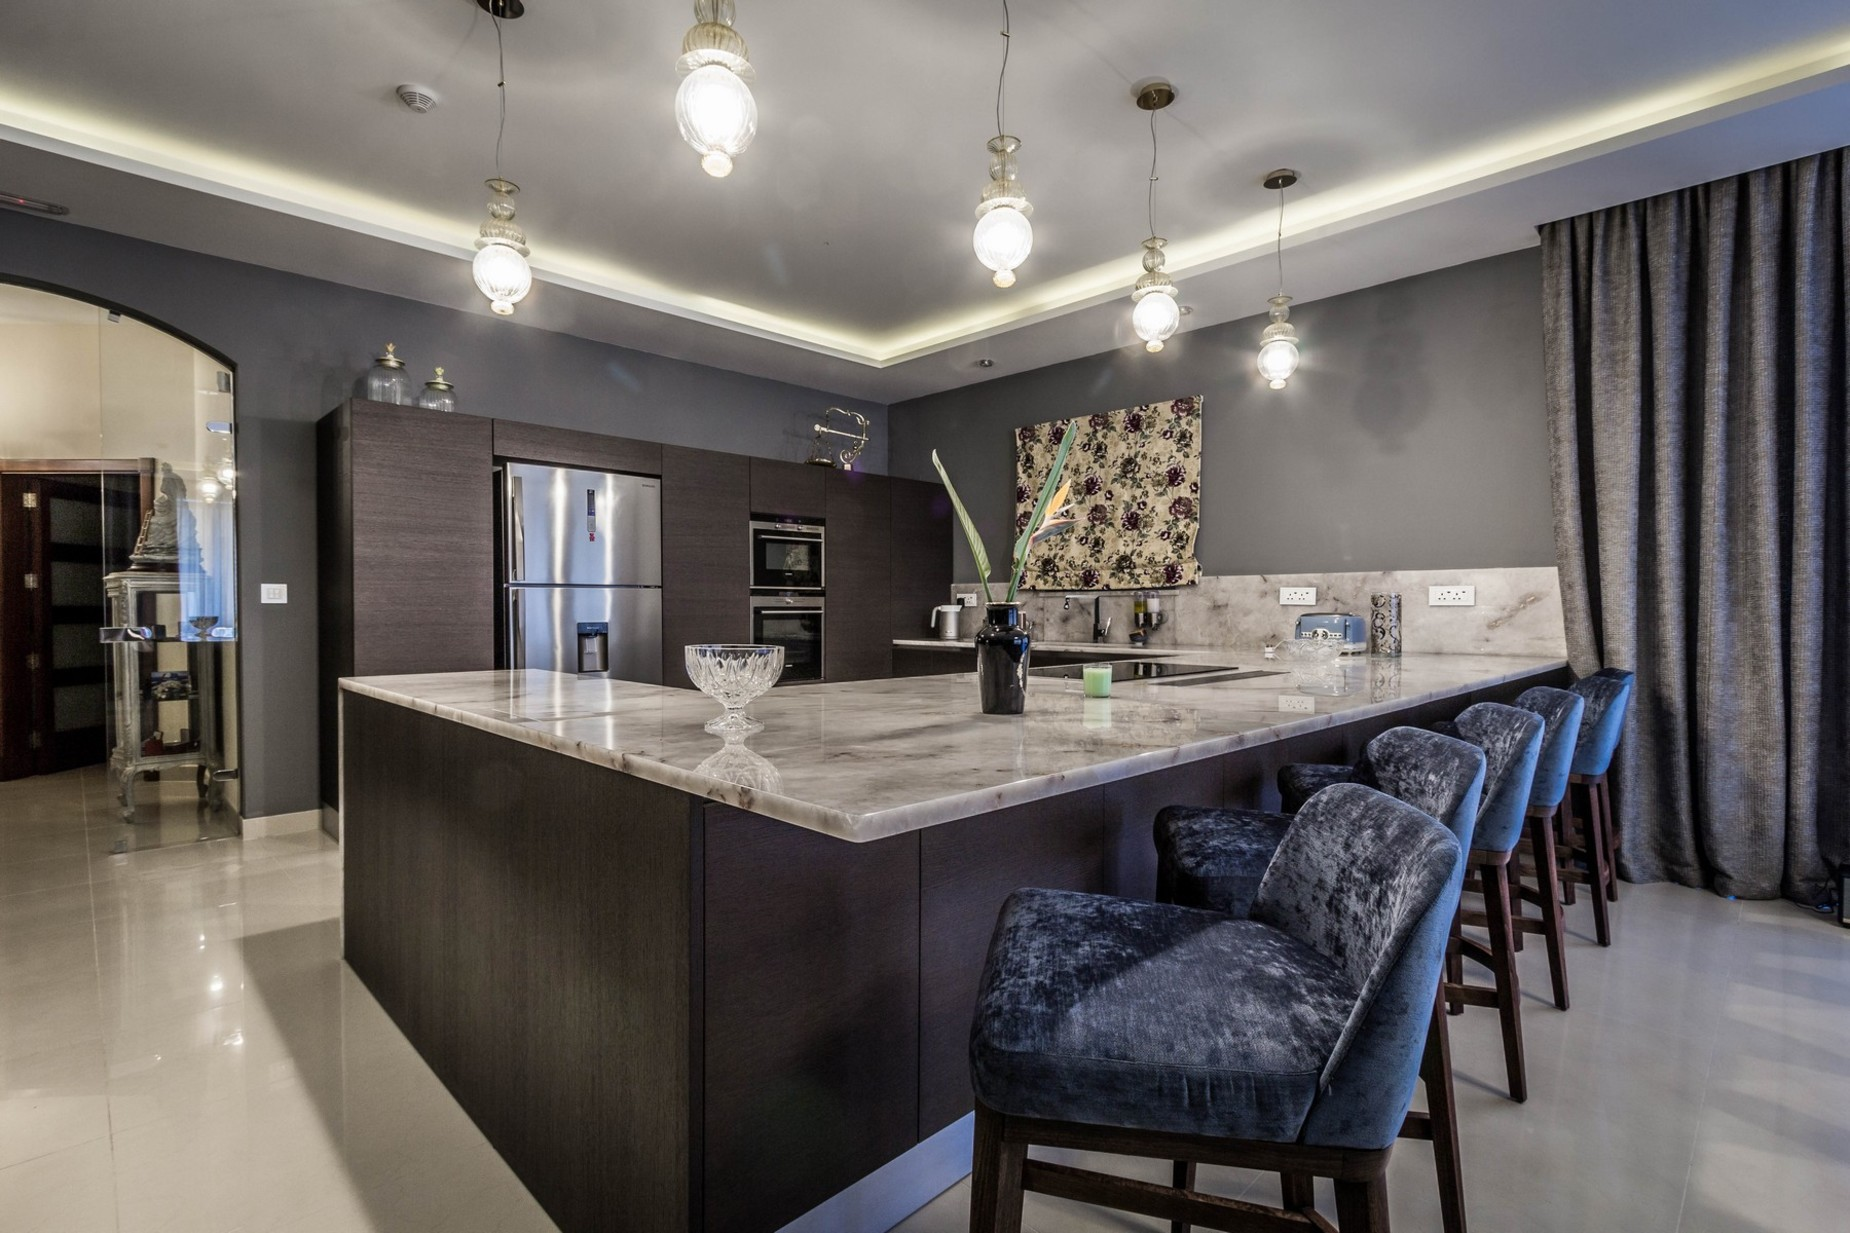 3 bed Apartment For Sale in Mellieha, Mellieha - thumb 6